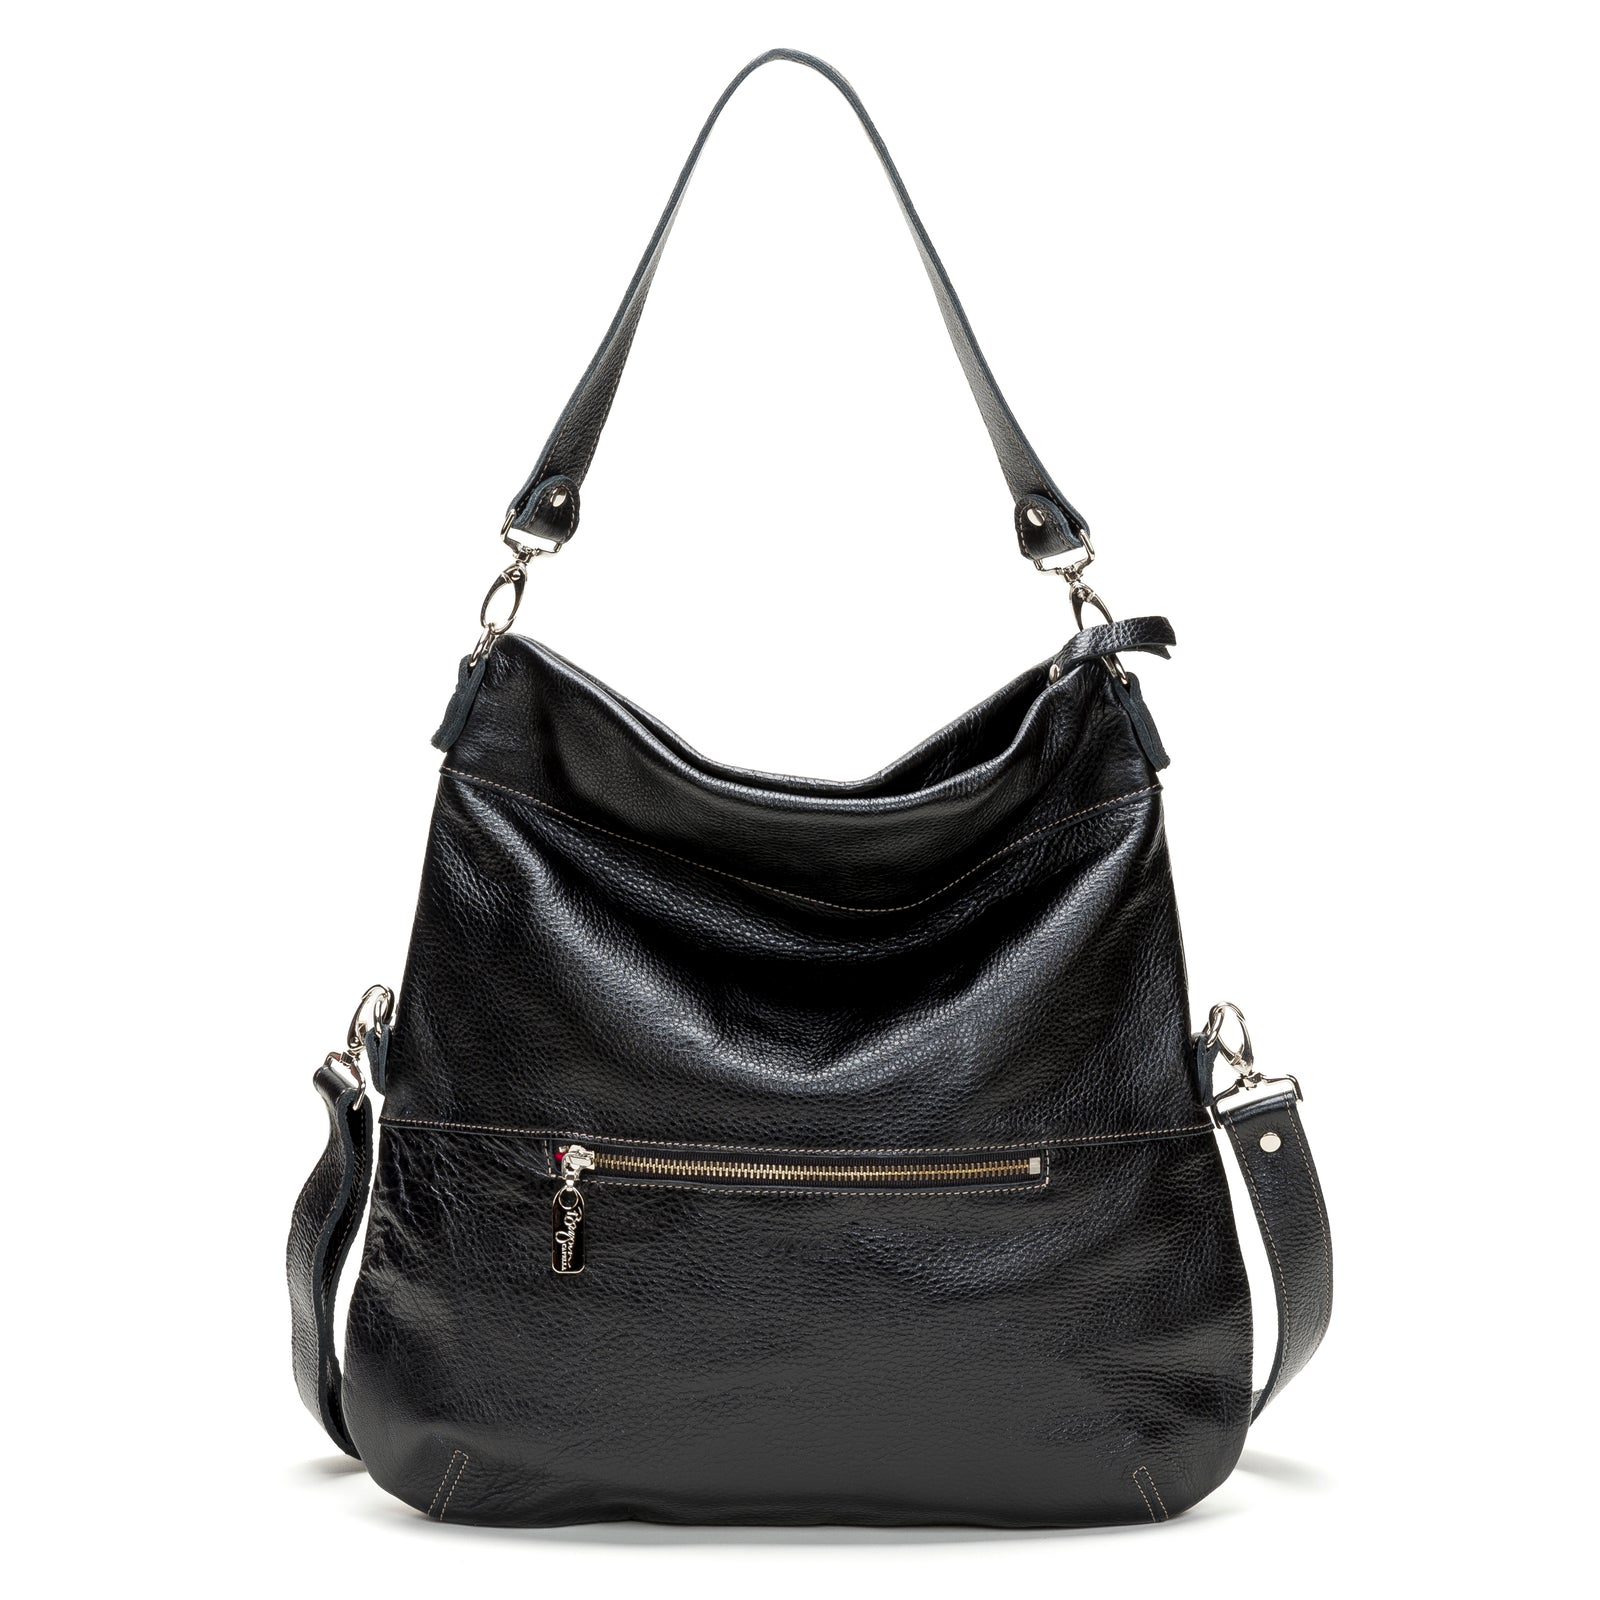 Lauren Crossbody - Noche - Brynn Capella, Large Crossbody